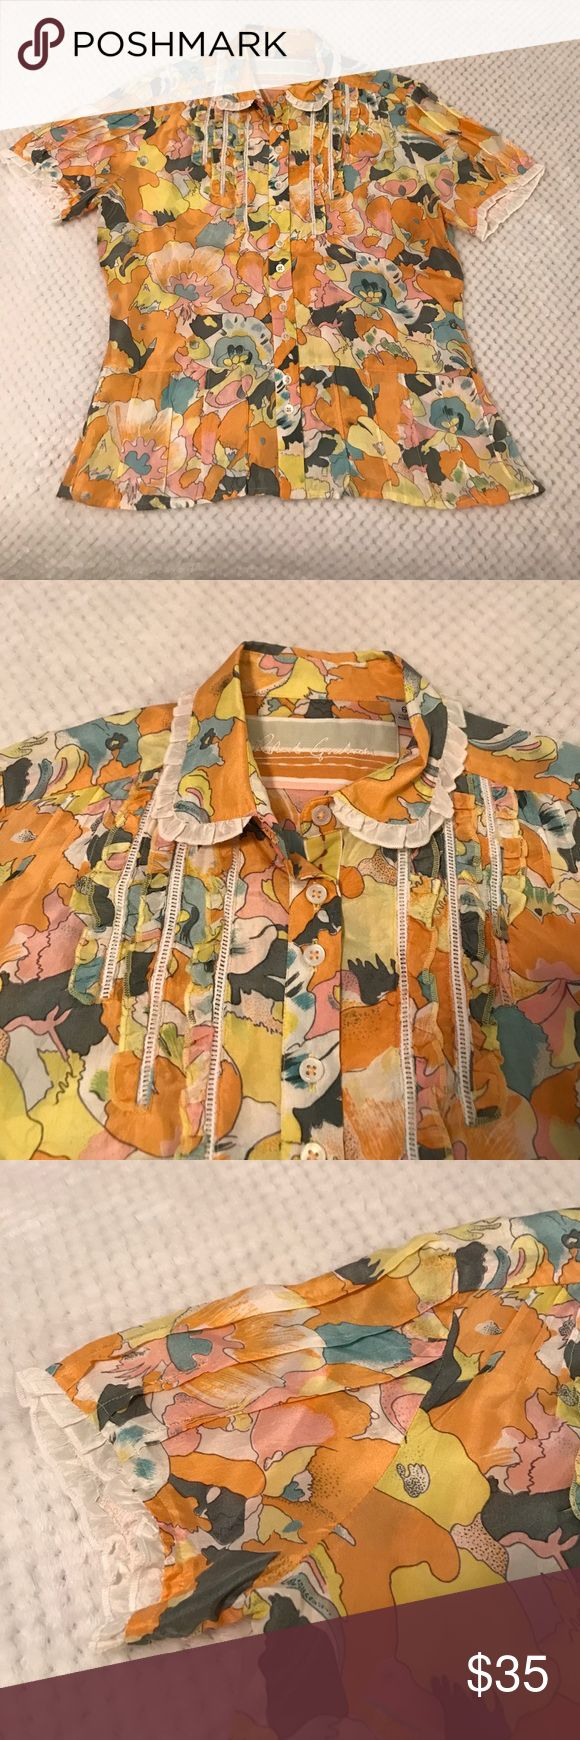 Robert Graham silk shirt, size 6. Beautiful, like new condition, Robert Graham silk shirt. Robert Graham Tops Blouses